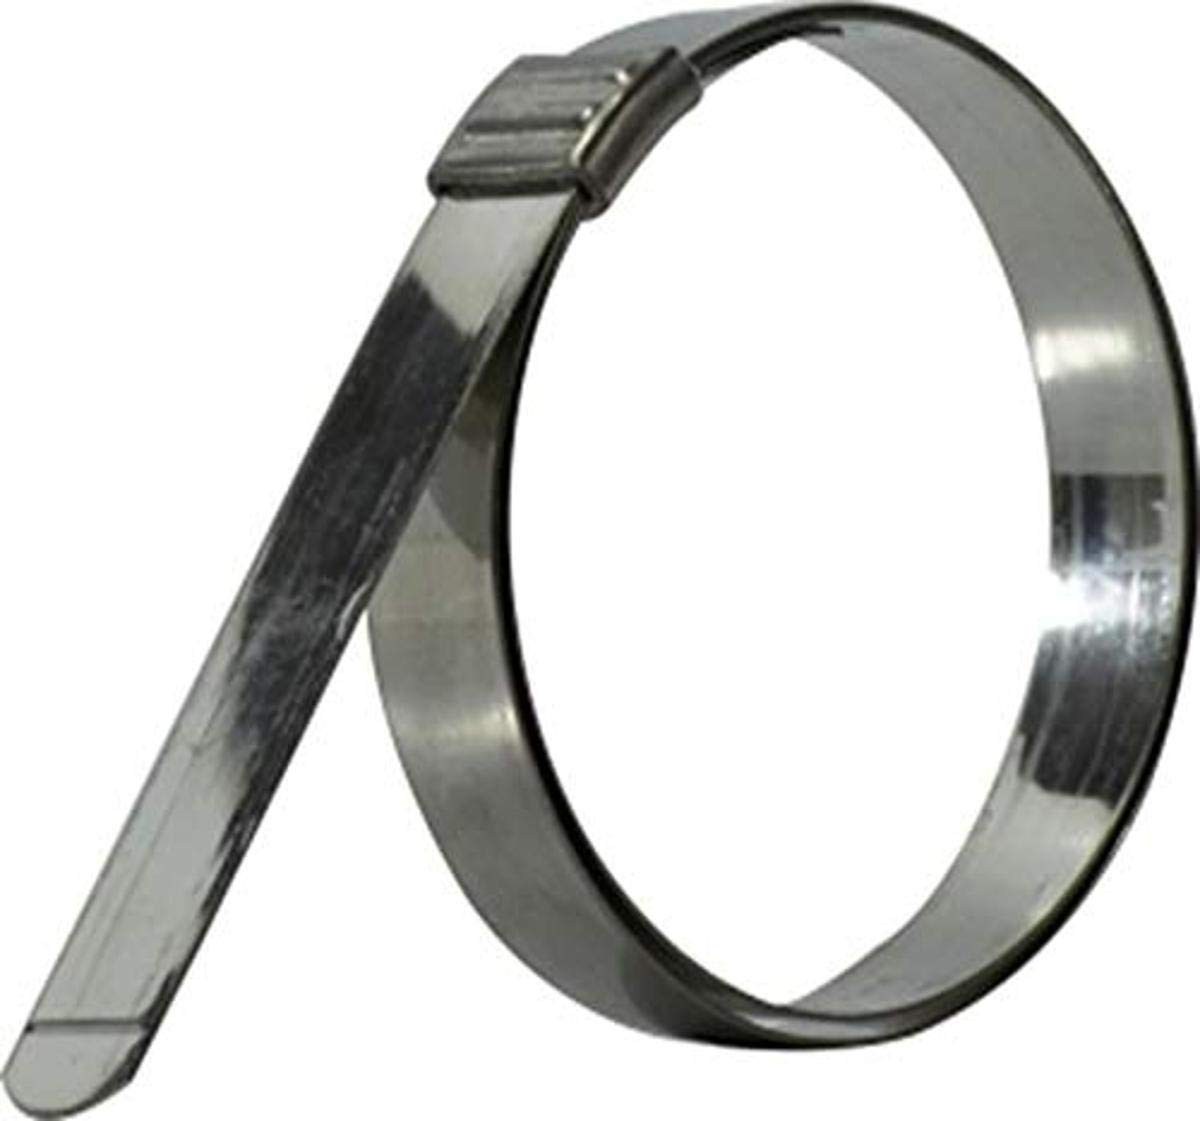 Stainless Steel 0.030 Thickness Smooth ID 5//8 width Clamp I.D Midland FLJS-205 Stainless Steel Fljs-Clamp Hose Clamp 1-1//2